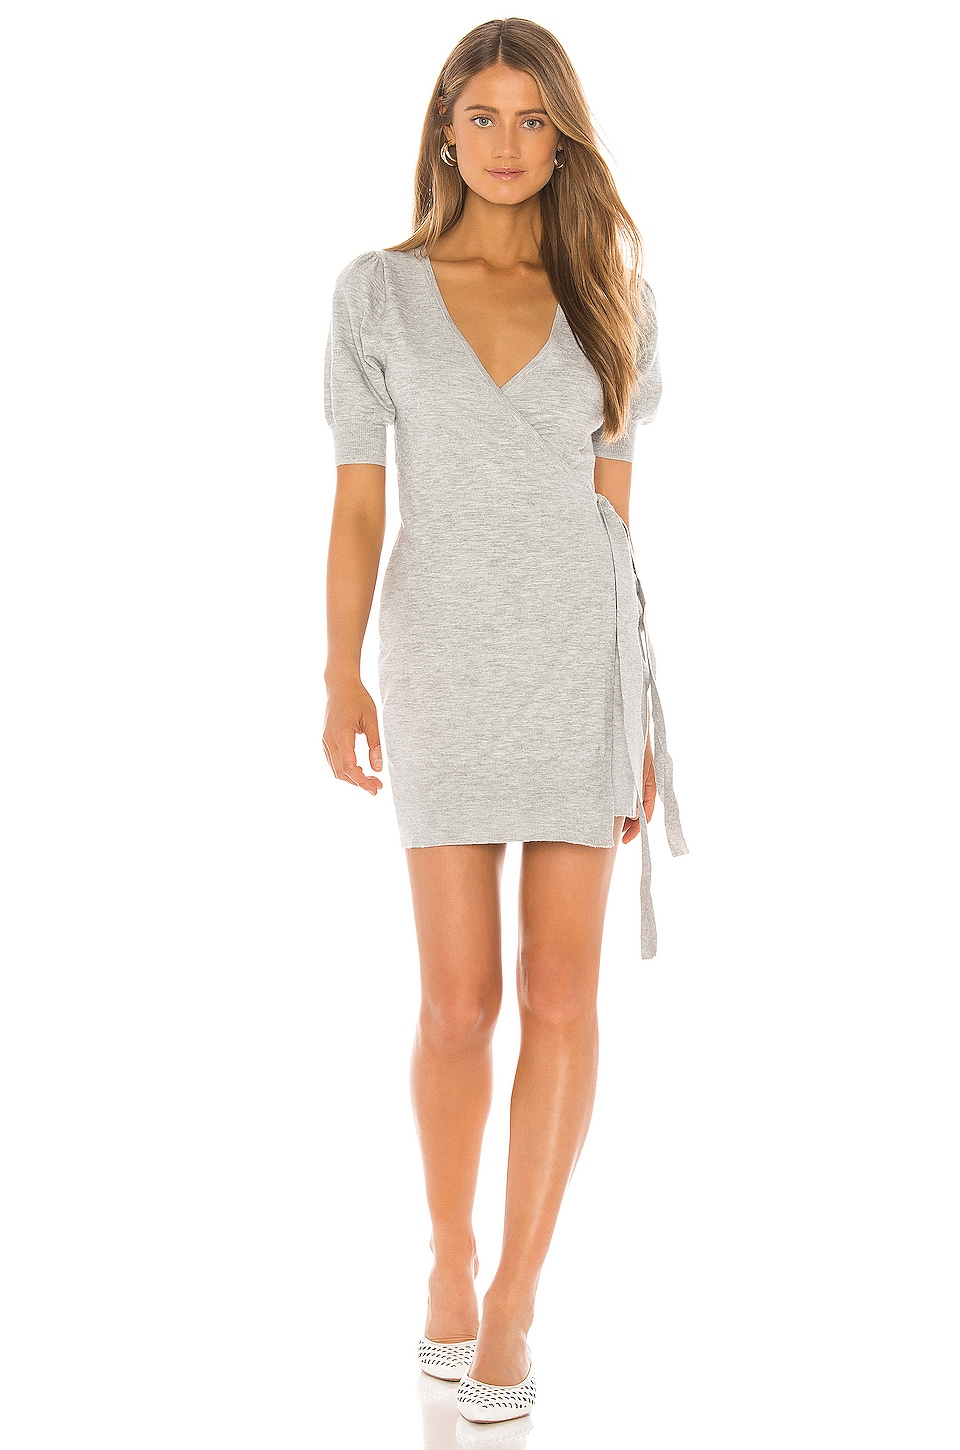 Tularosa Moonstruck Dress in Grey